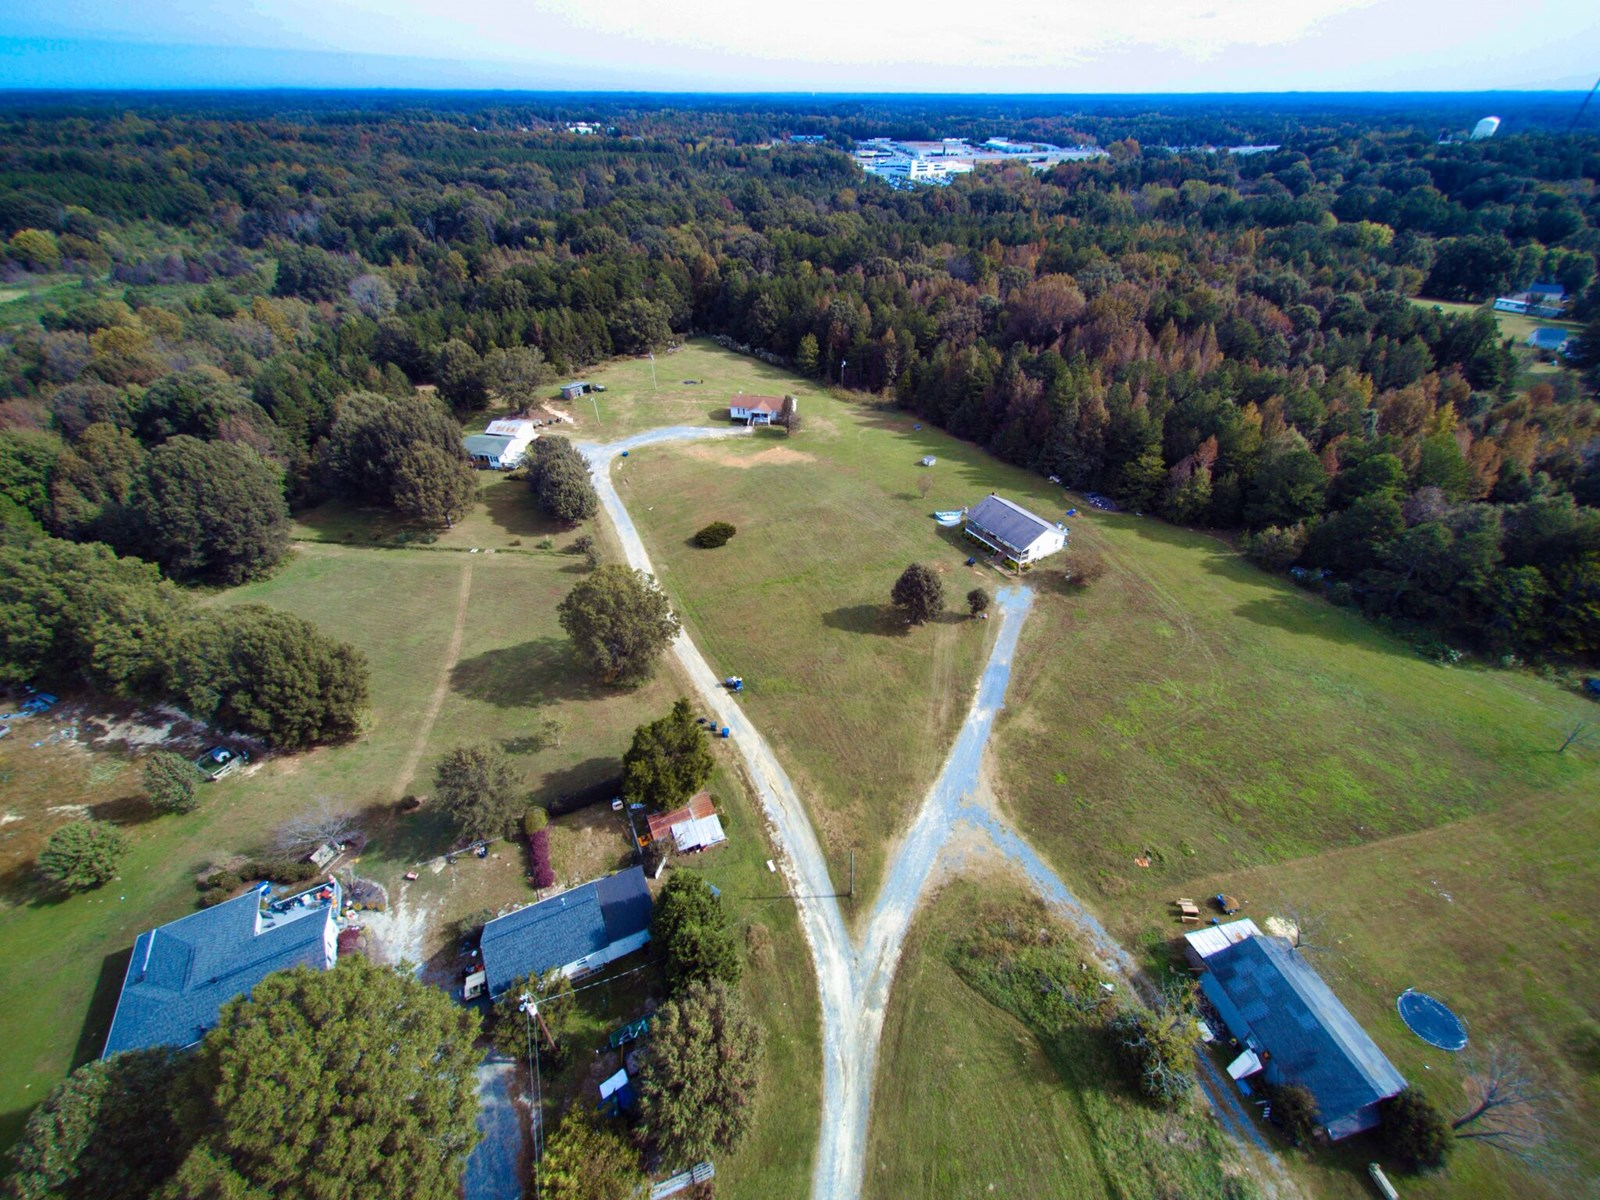 Acreage For Sale in Matthews NC